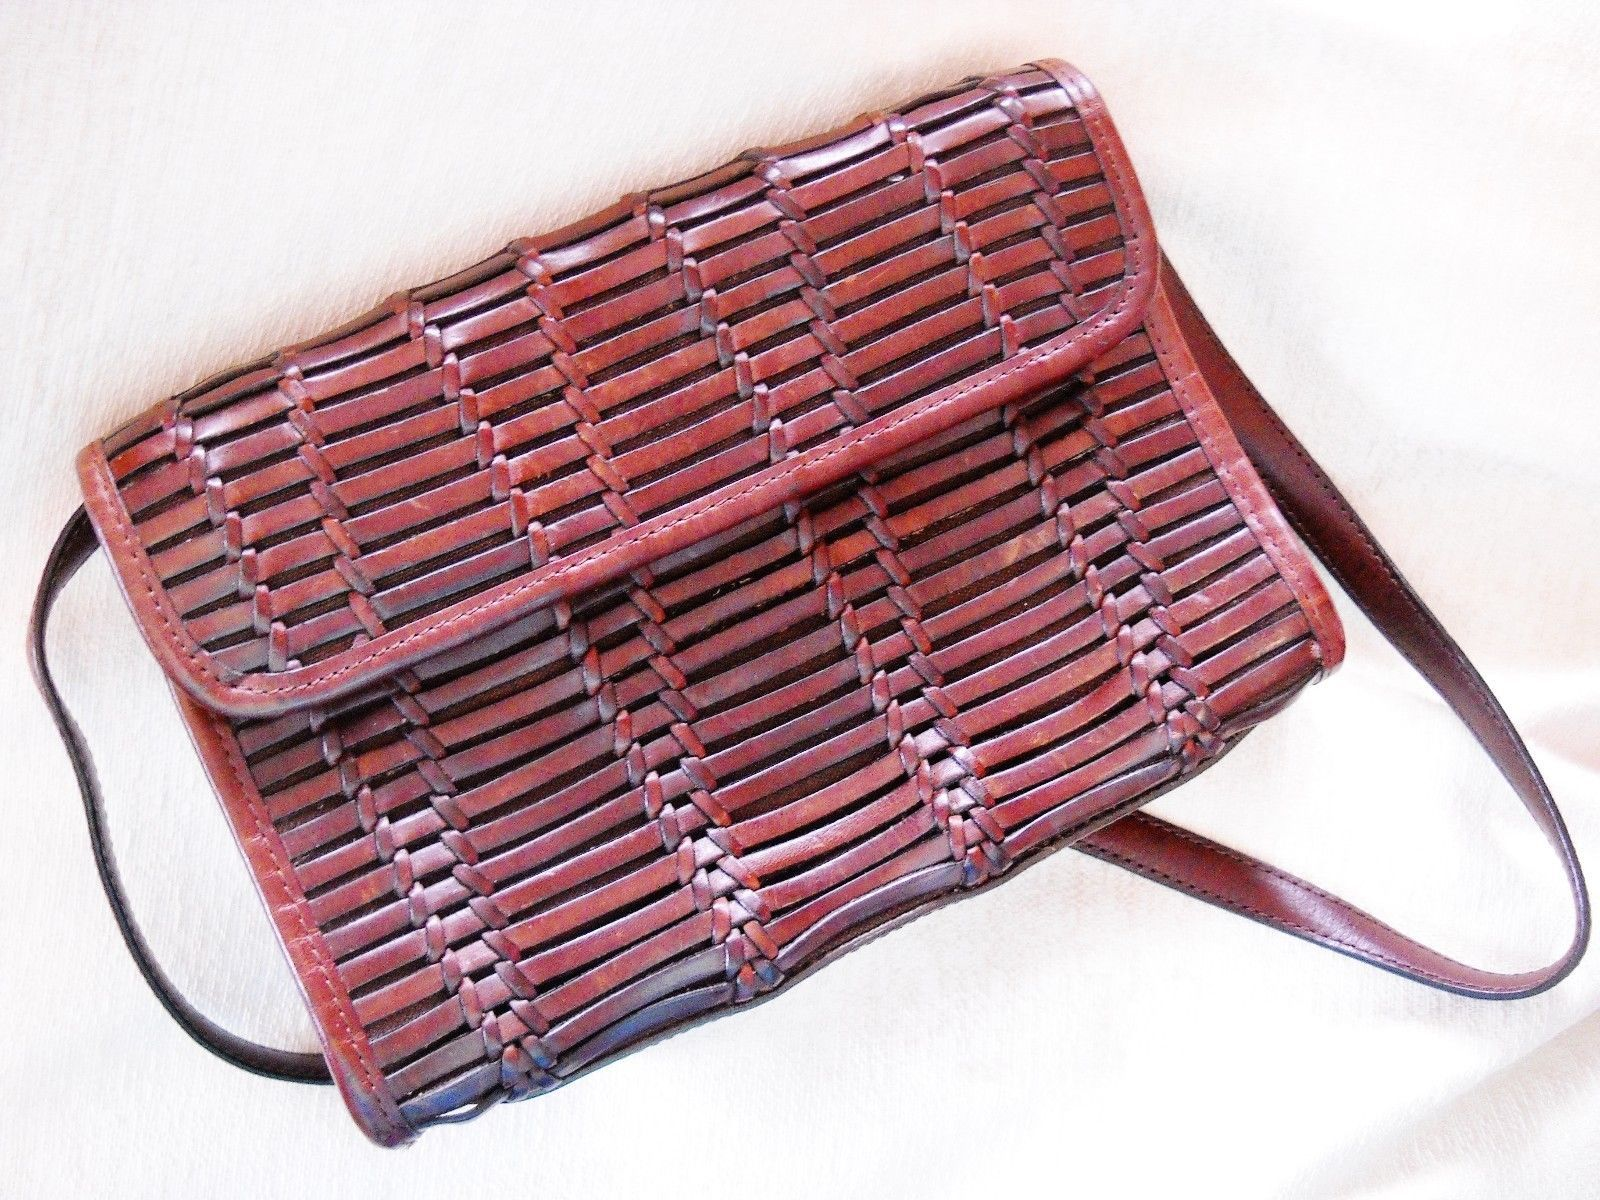 Primary image for VINTAGE ANN TAYLOR BROWN WOVEN LEATHER PURSE W. DETACHABLE LEATHER STRAP